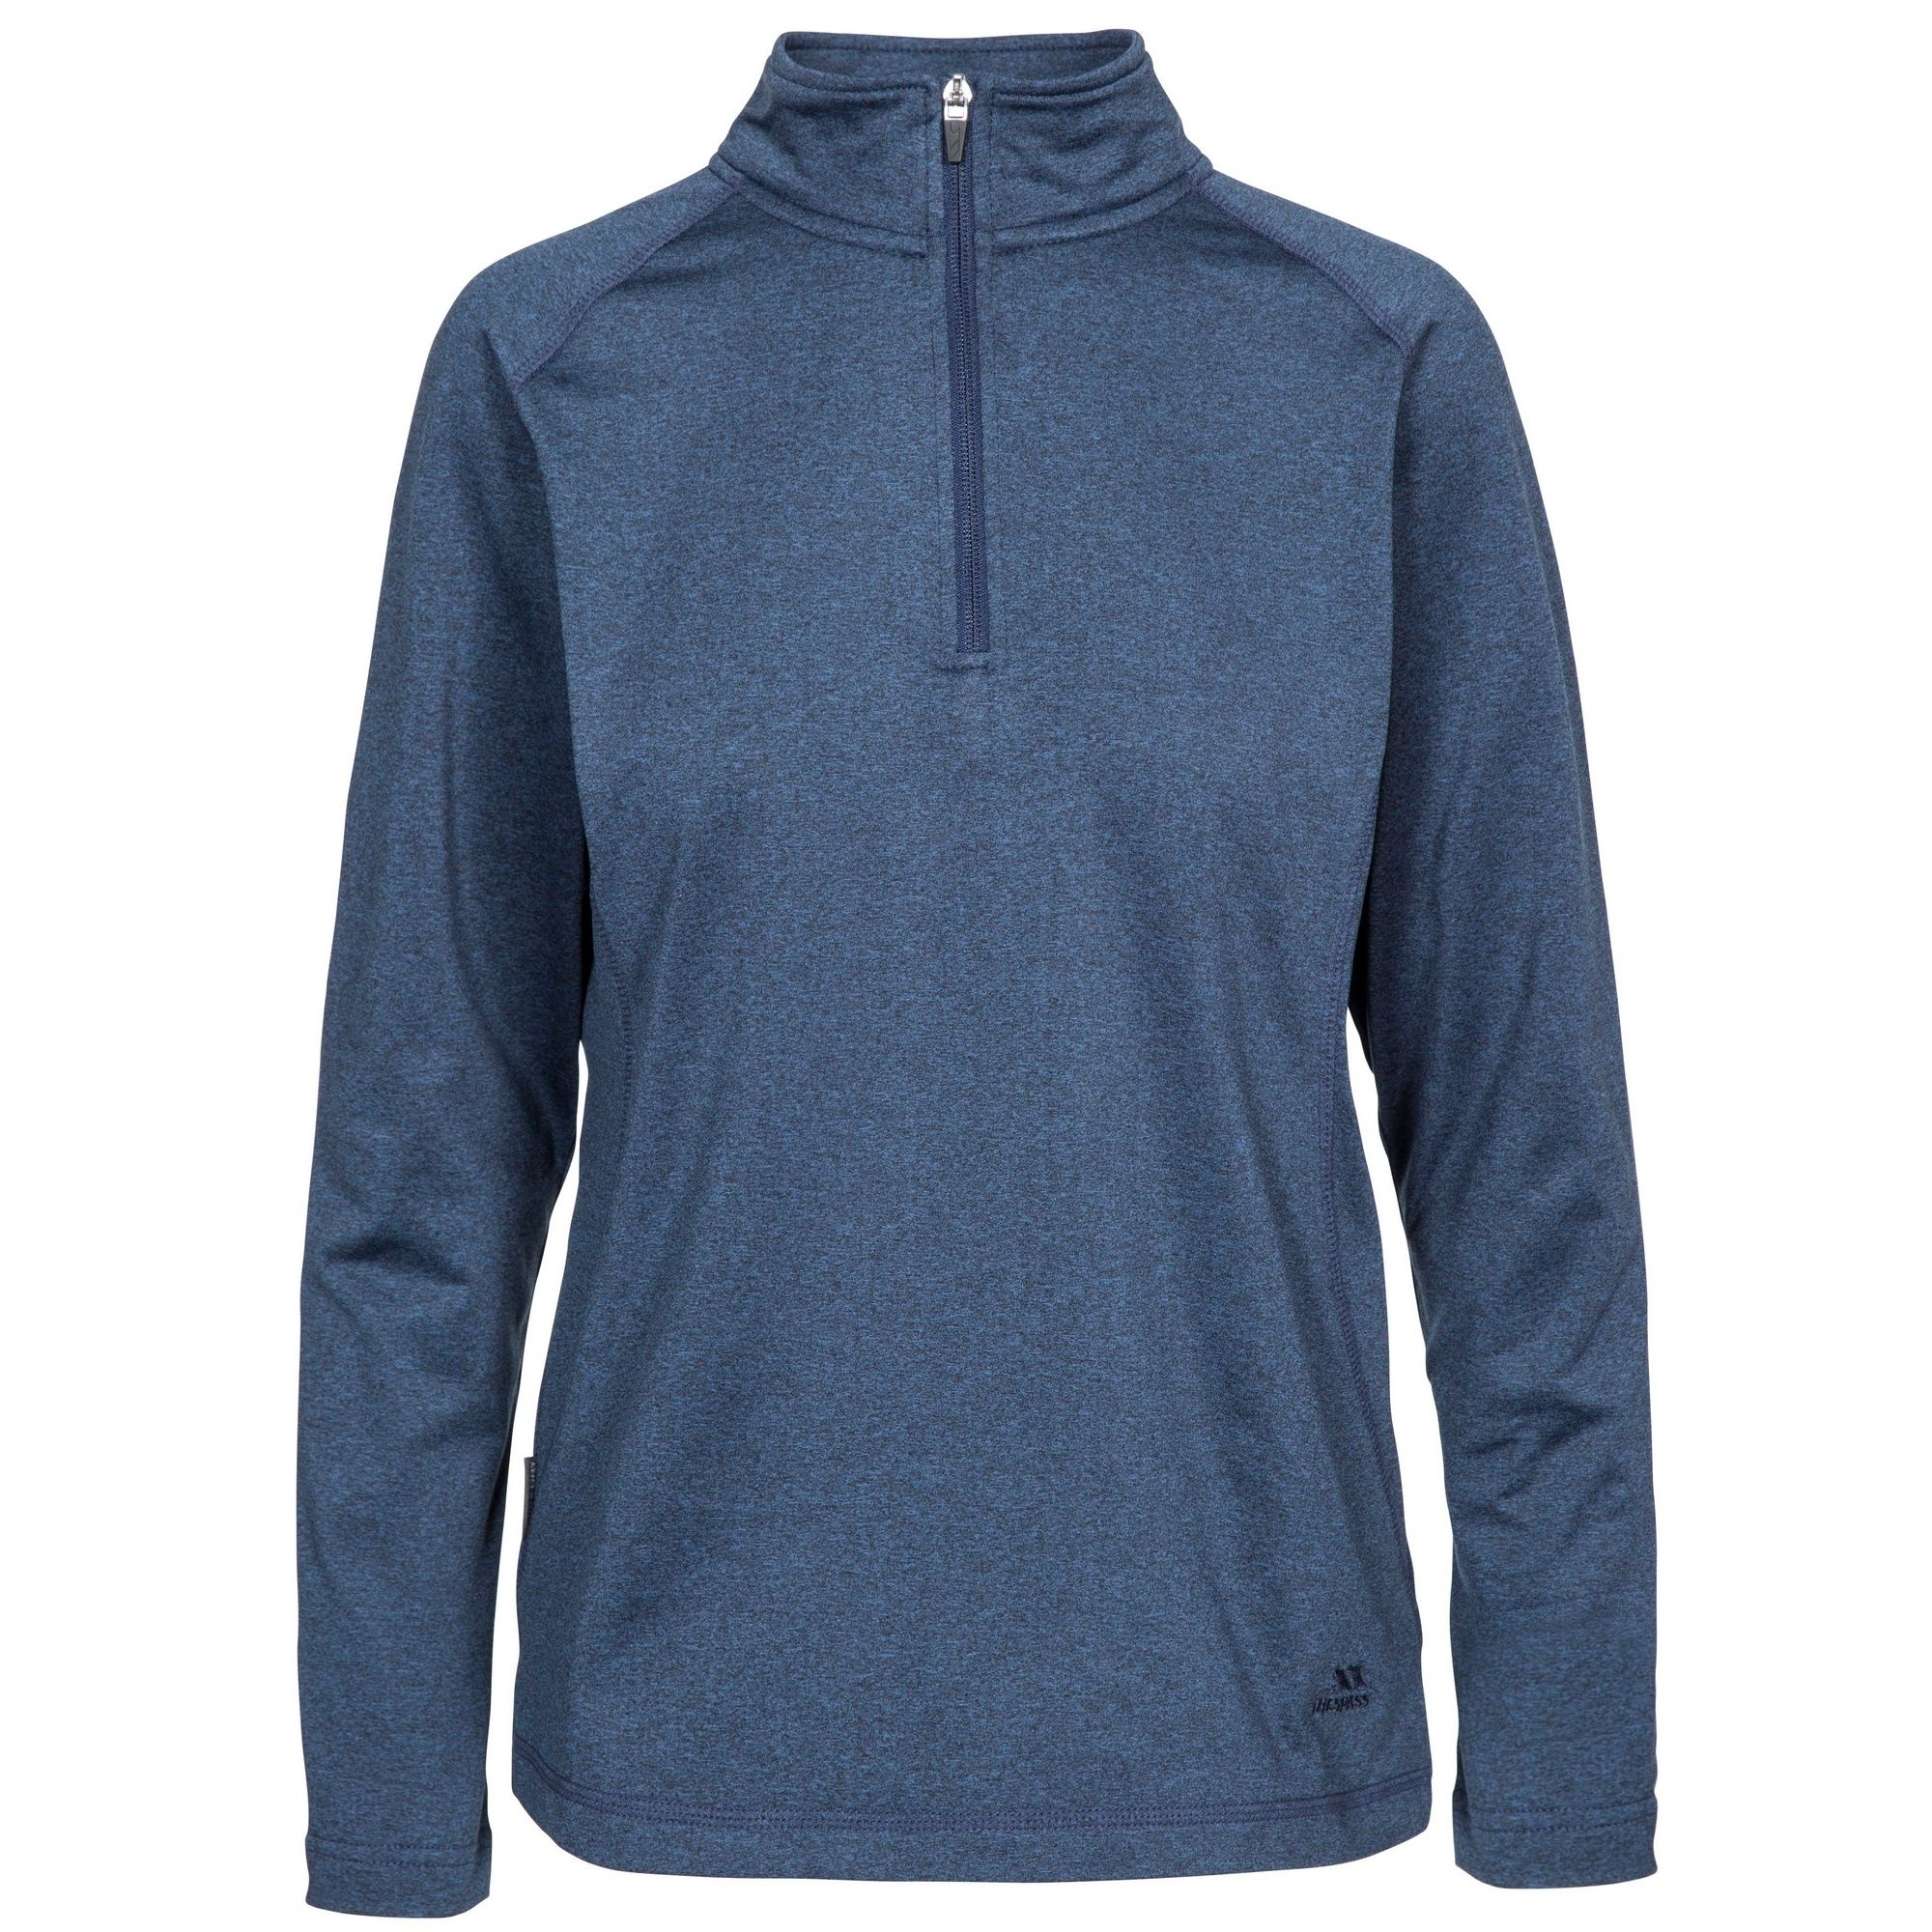 Trespass Womens/Ladies Zirma Long Sleeve Active Top